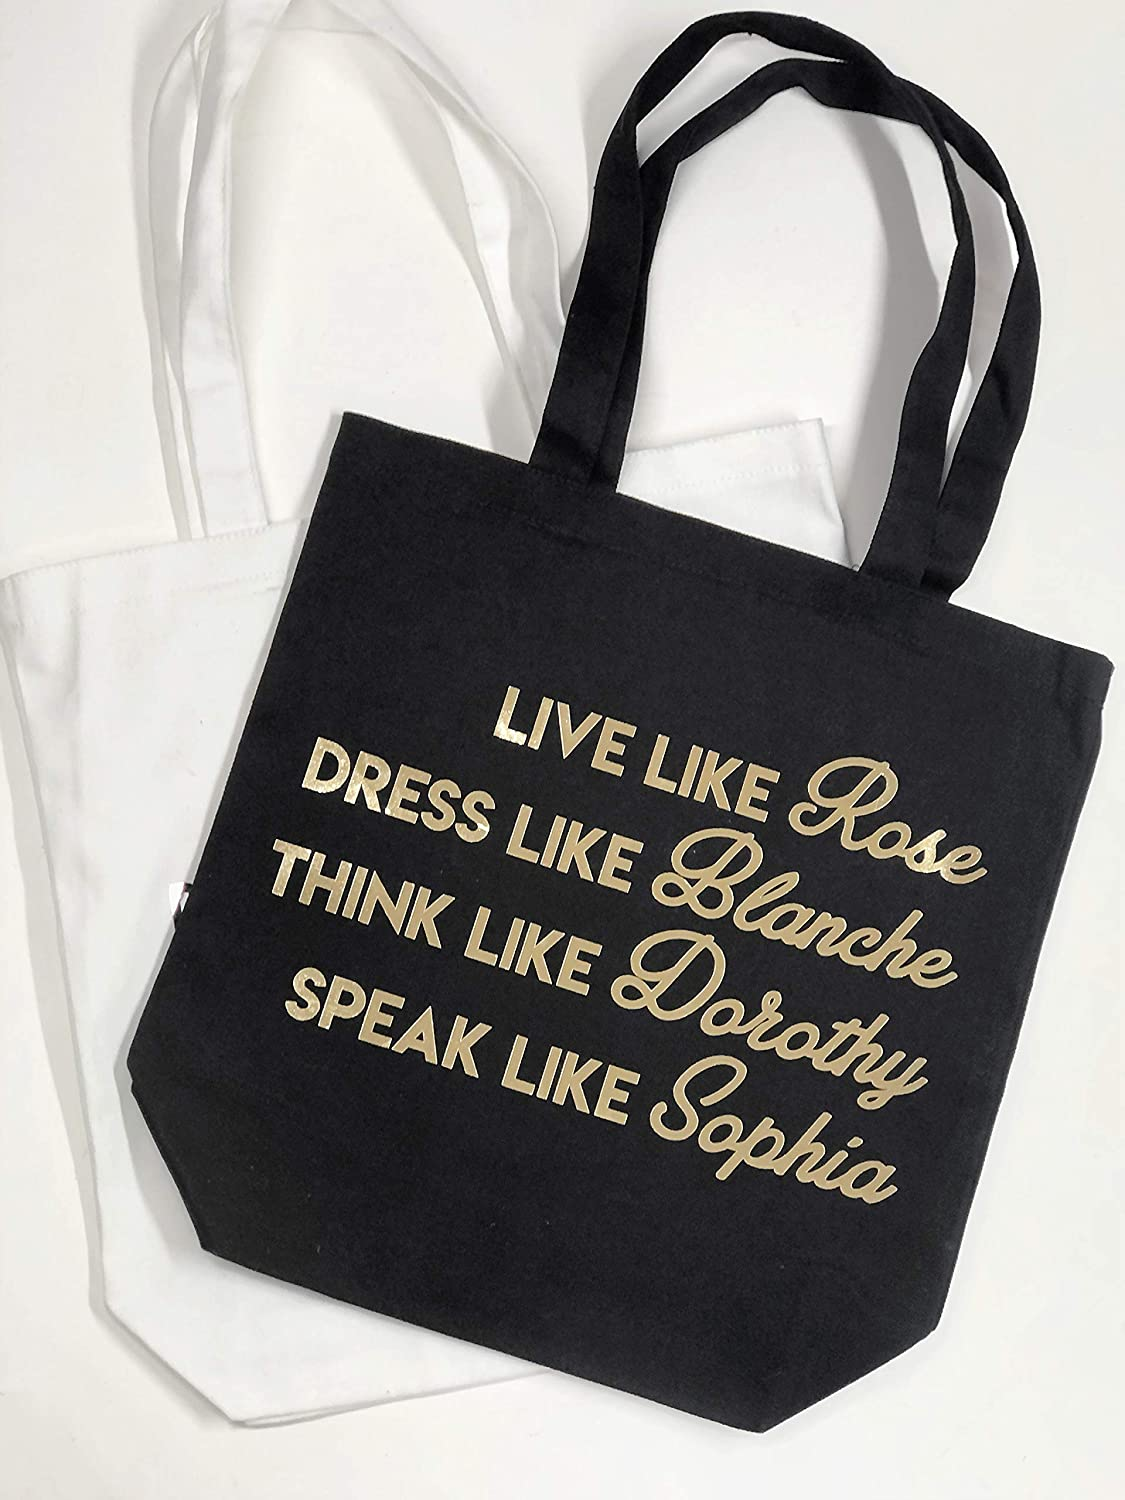 Max 86% OFF golden girls tote 1 year warranty bag gifts - for friends